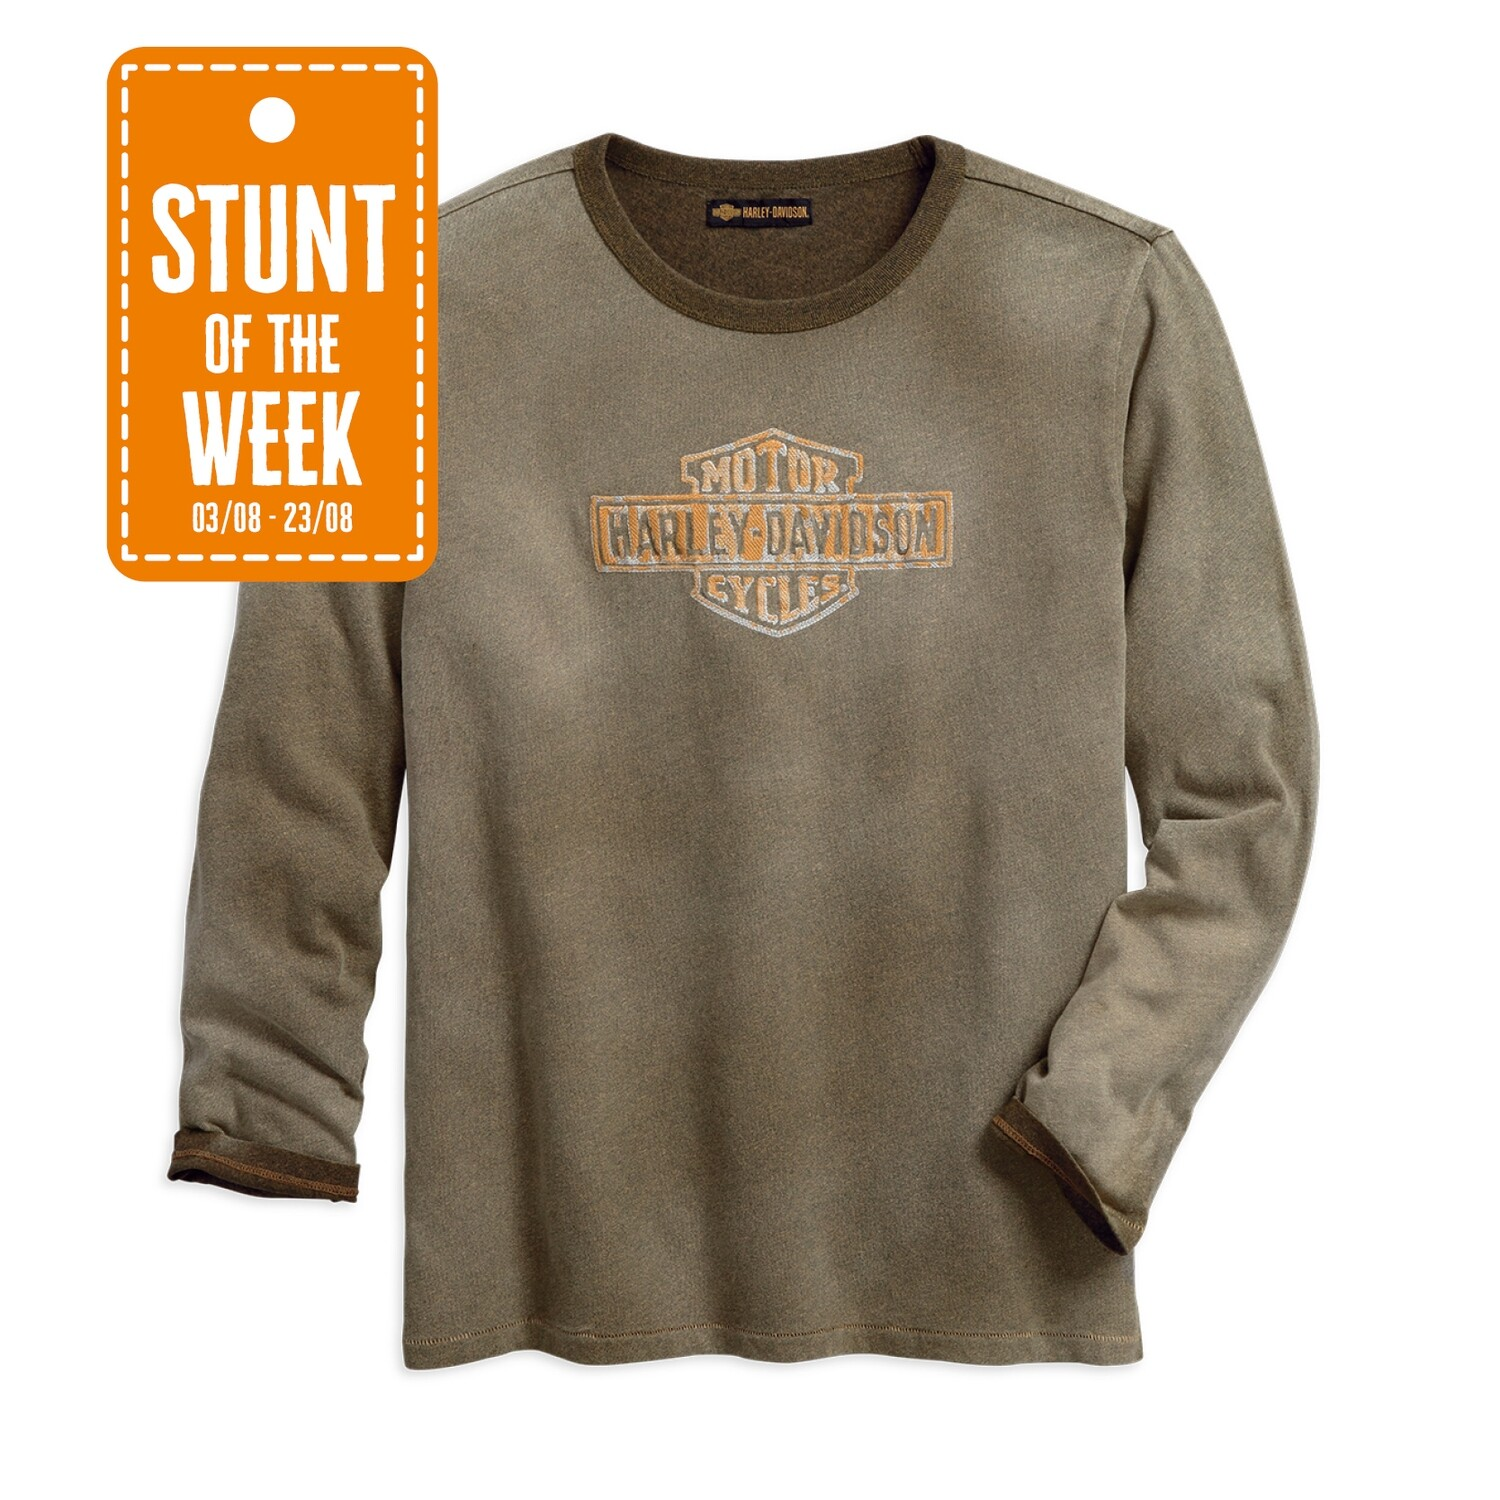 STUNT OF THE WEEK: 1903 Two-Colour Embroidered Tee Men